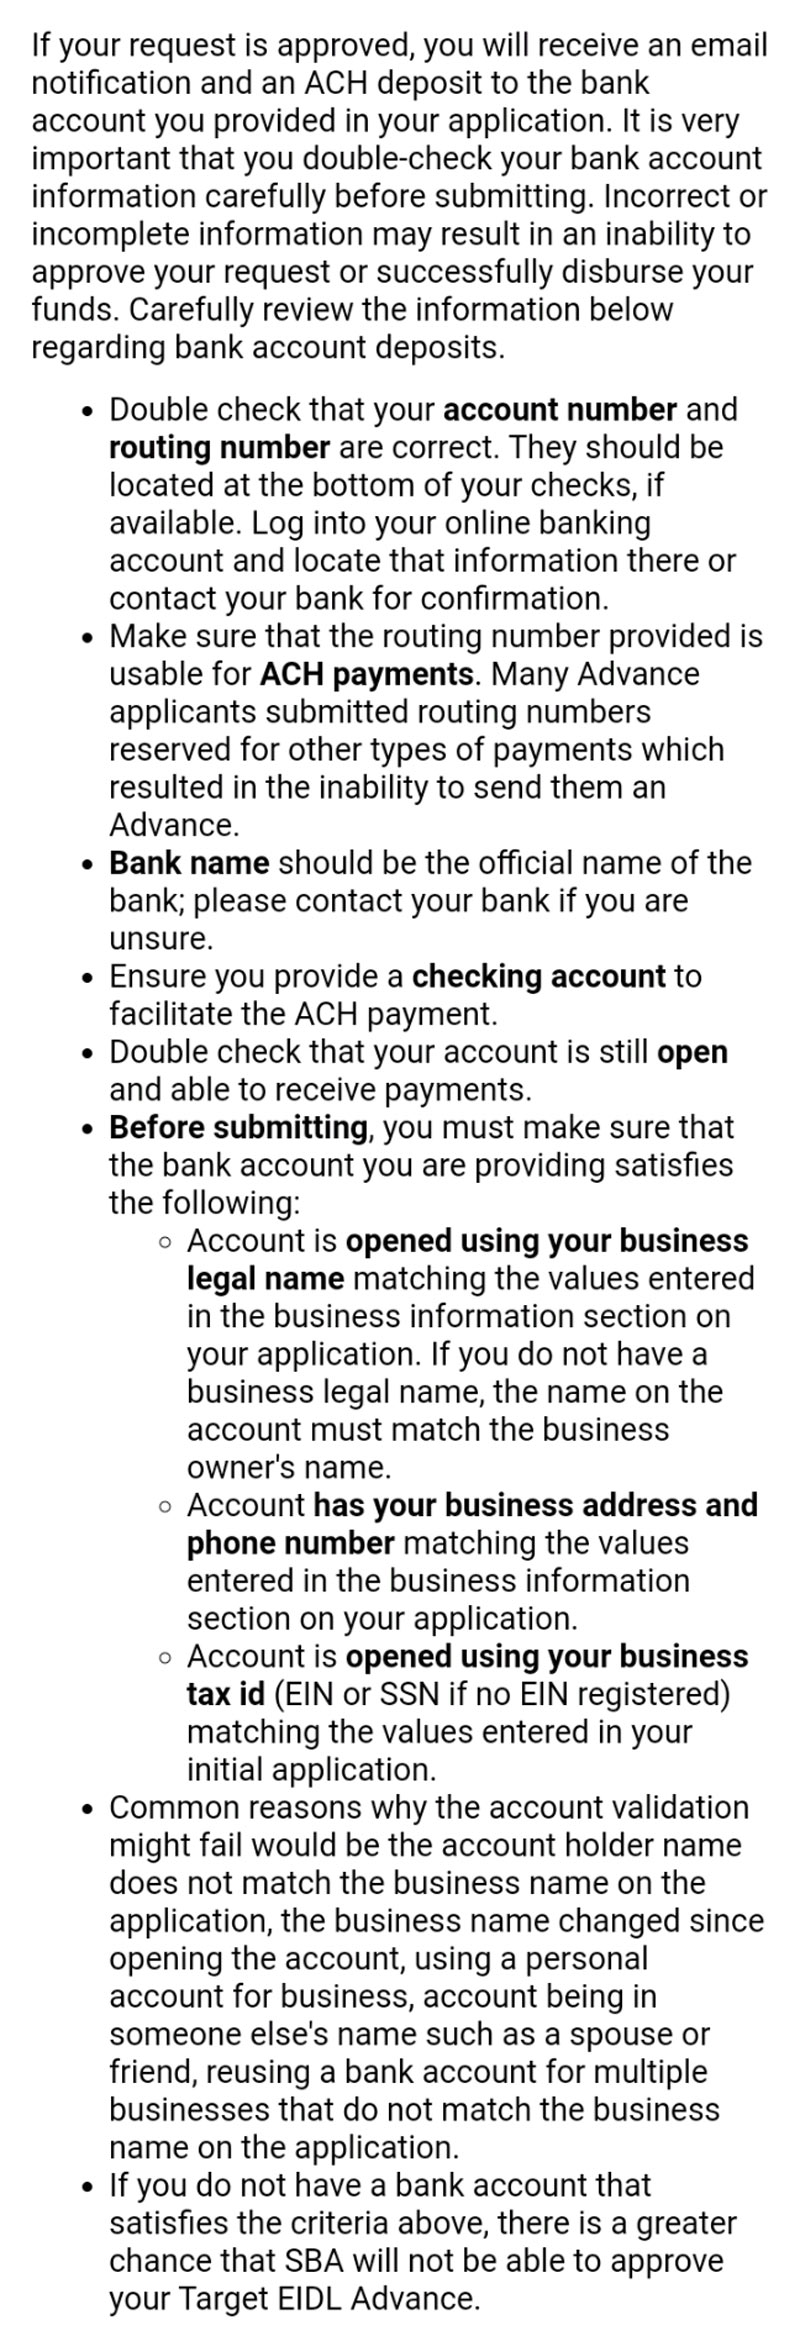 Screenshot of section of the IRS email inviting application for the targeted EIDL advance with long detailed information about having the right bank account information.